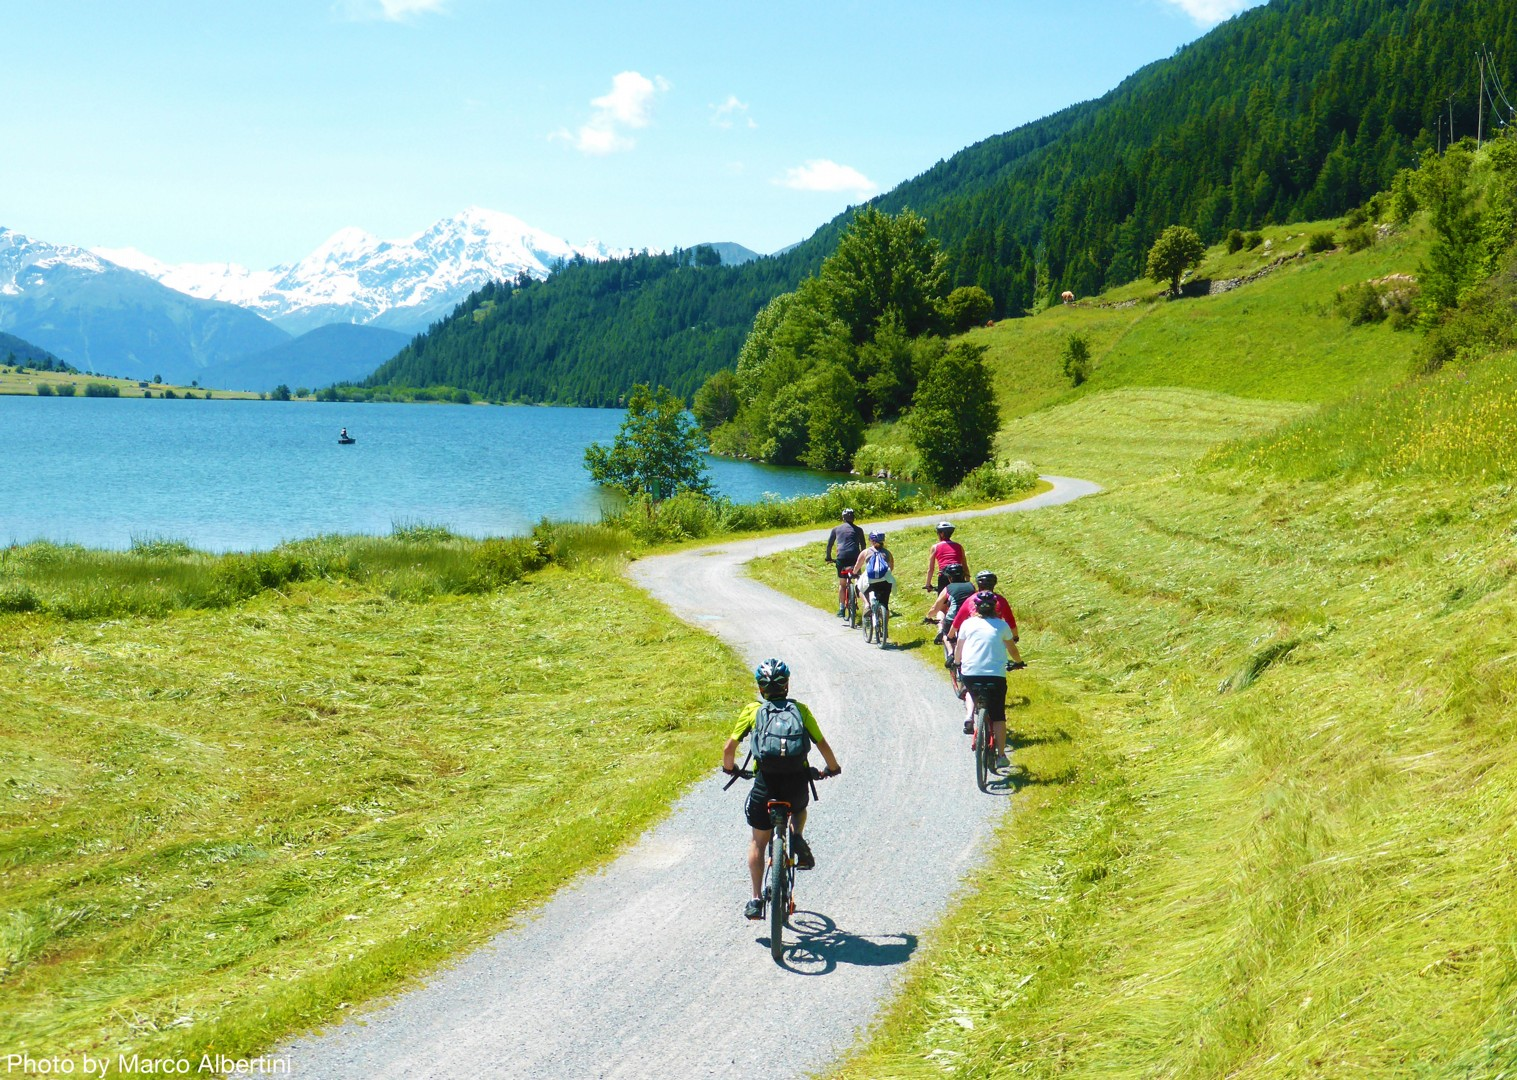 guided-leisurely-cycling-austria-italy-trip.jpg - Austria and Italy - La Via Claudia - Guided Leisure Cycling Holiday - Italia Leisure and Family Cycling